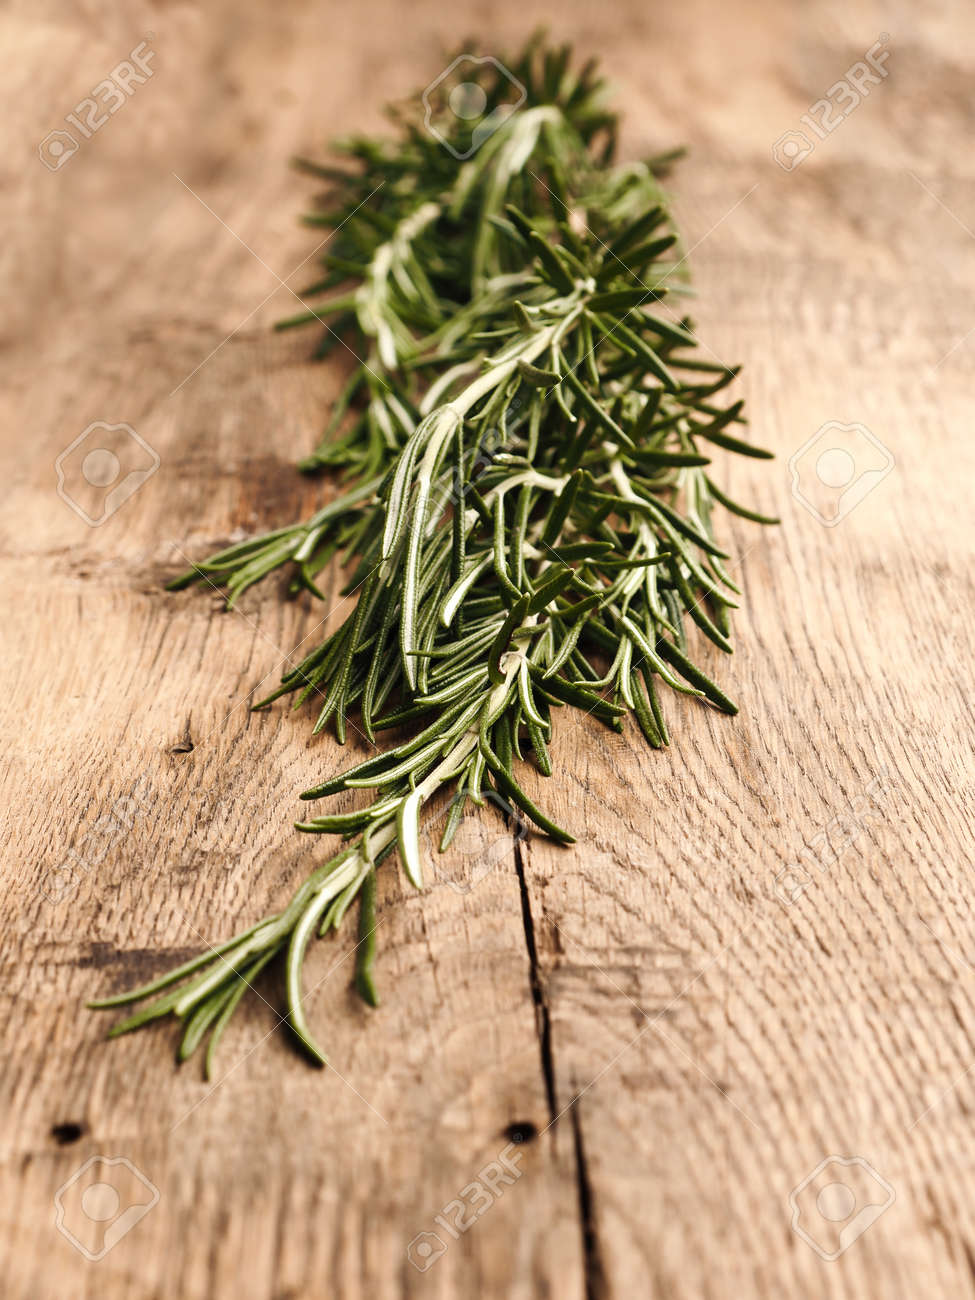 Twig of organic rosemary on a rustic wooden kitchen table, healthy food or ingredients concept - 145977013